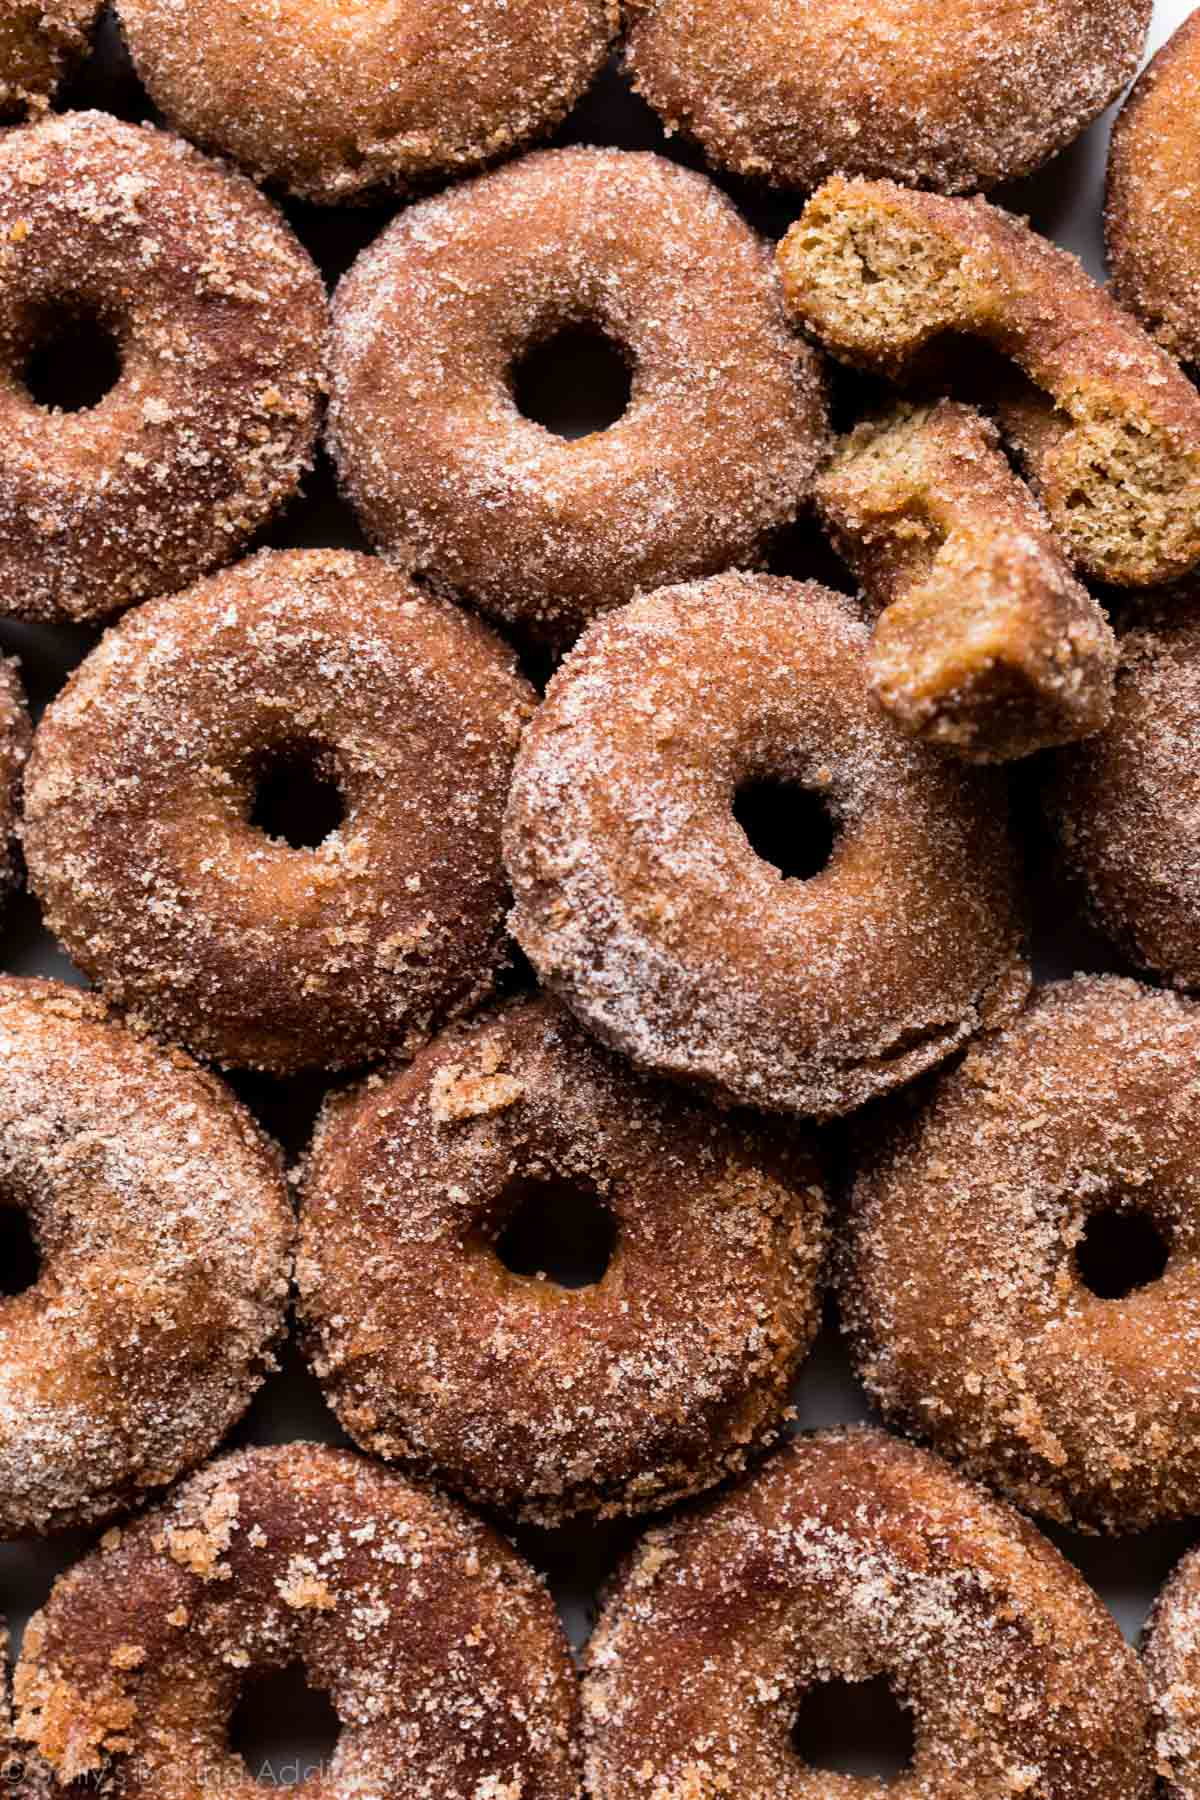 Baked apple cider donuts coated in buttery apple cinnamon spice! Easy and quick baked donuts recipe on sallysbakingaddiction.com